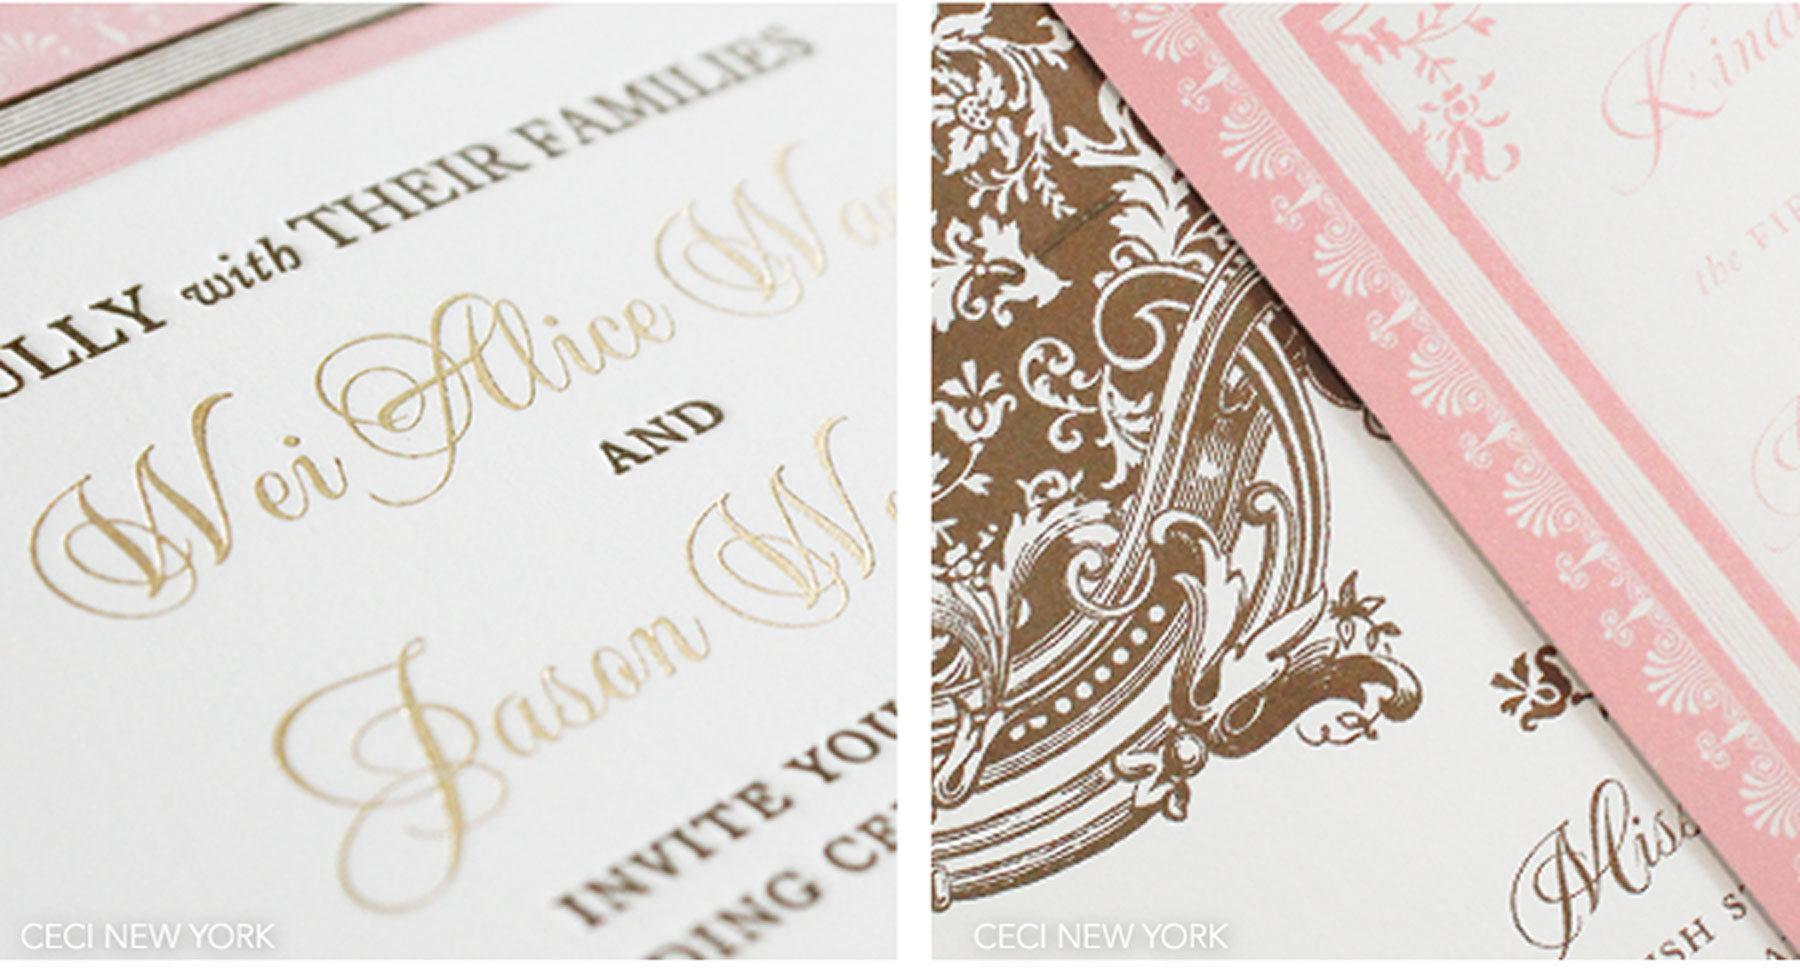 Luxury Wedding Invitations by Ceci New York - Our Muse - Elegant Ornate Wedding - Be inspired by Alice and Jason's ornate, romantic wedding in Napa - Ceci New York Luxury Wedding Invitations - wedding, letterpress, foil printing, invitations